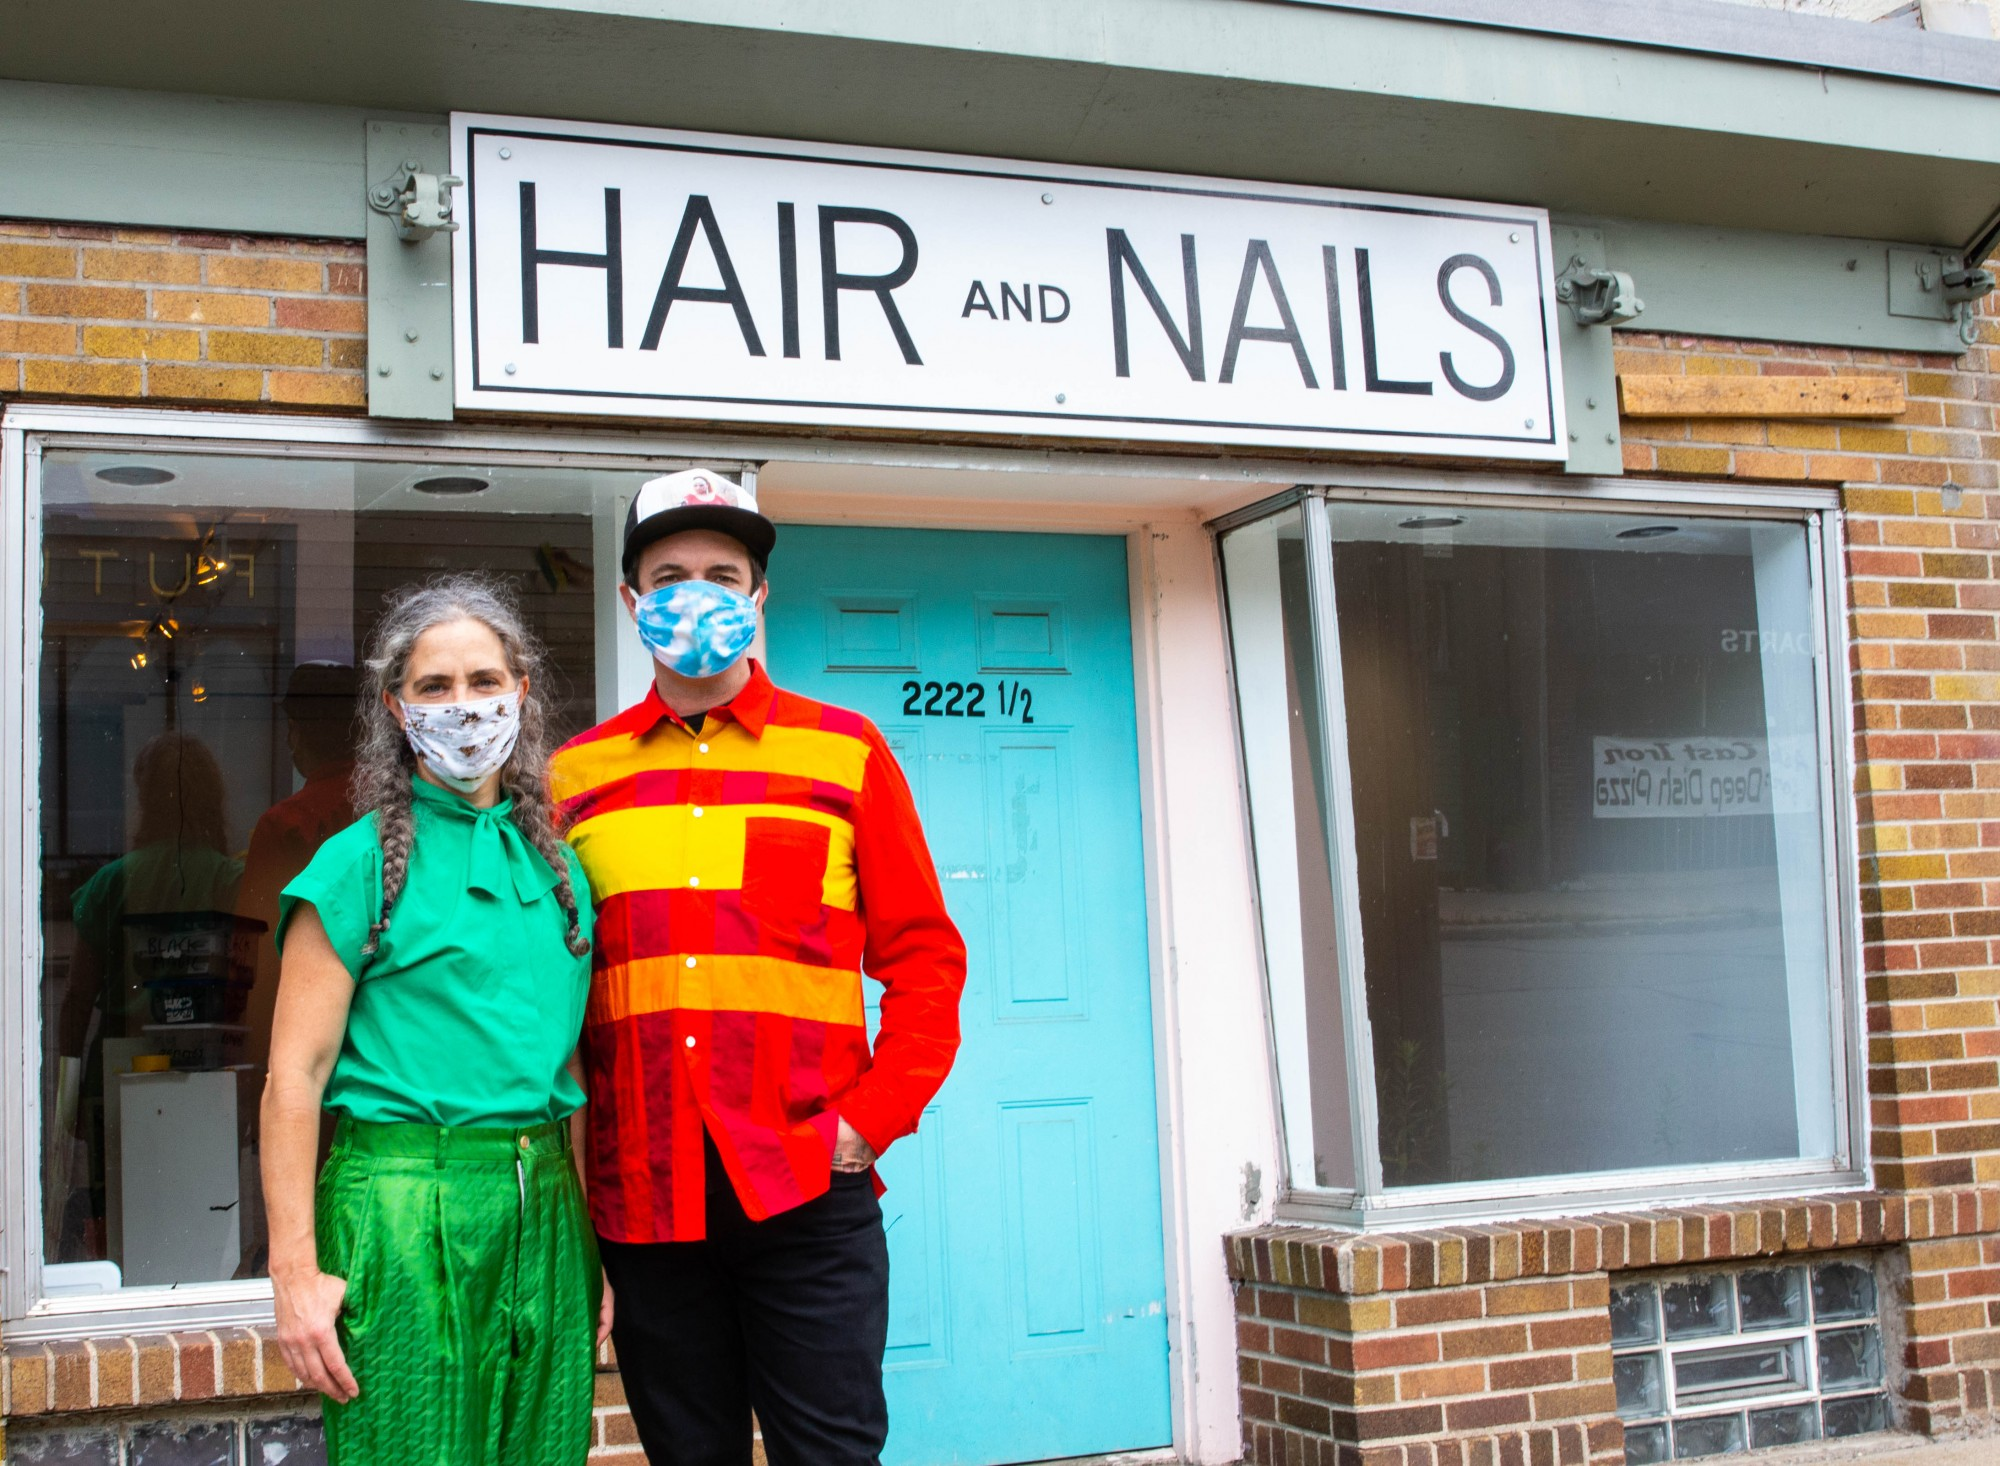 Hair + Nails Contemporary Art Gallery, located on East 35th St., has a new exhibit about queer love opening on Saturday, July 25. Kristin Van Loon (left) and Ryan Fontaine (right), who own and operate the gallery, pose for a portrait on Monday, July 20, 2020.